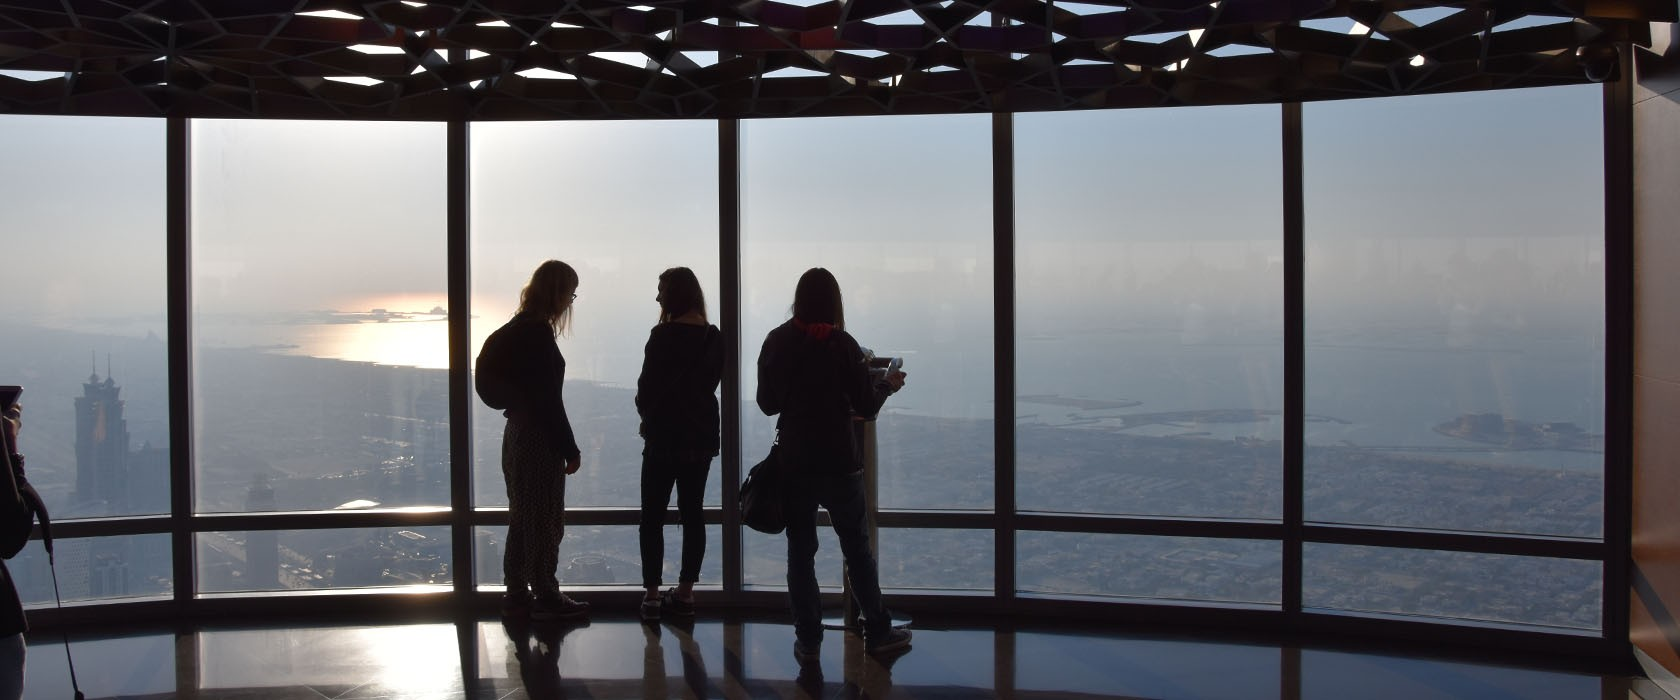 Ticket At The Top, Burj Khalifa SKY (148e verdieping)